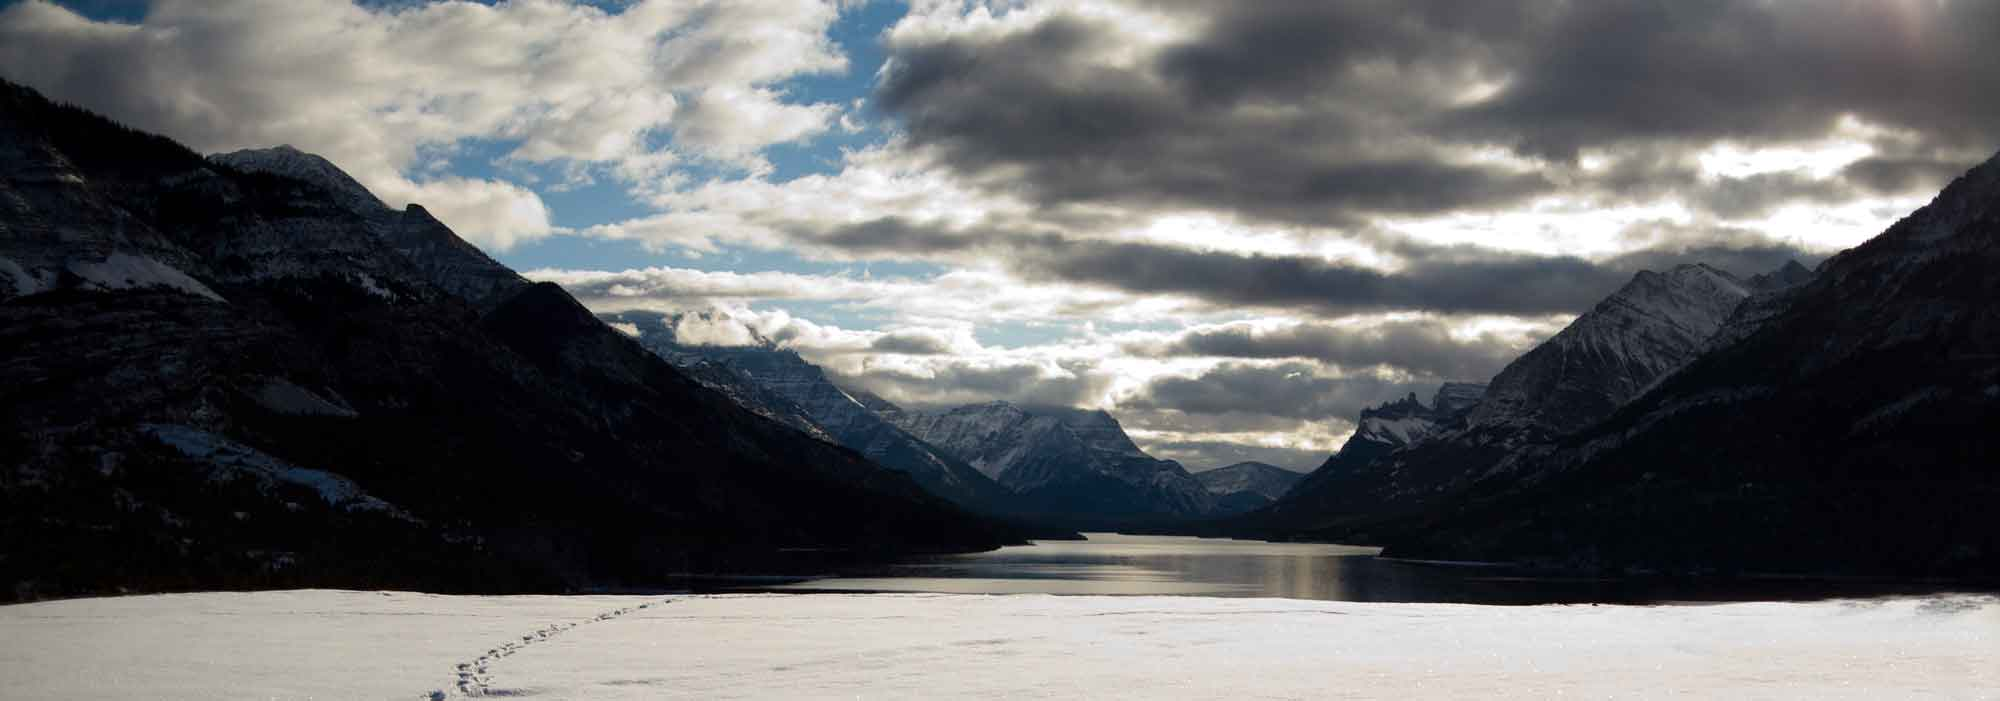 Waterton-Hotels-Waterton-Lake-and-Prince-of-Wales-Alberta-Canada